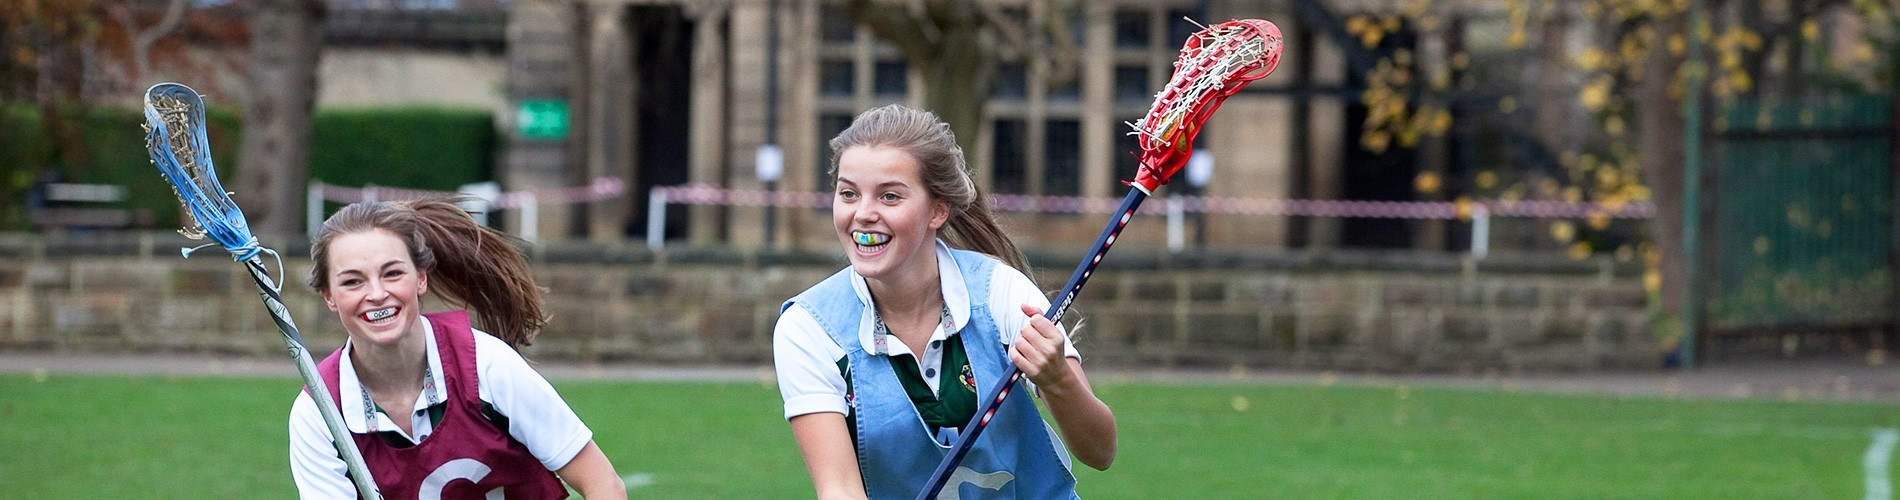 Harrogate Ladies College – Lacrosse Match